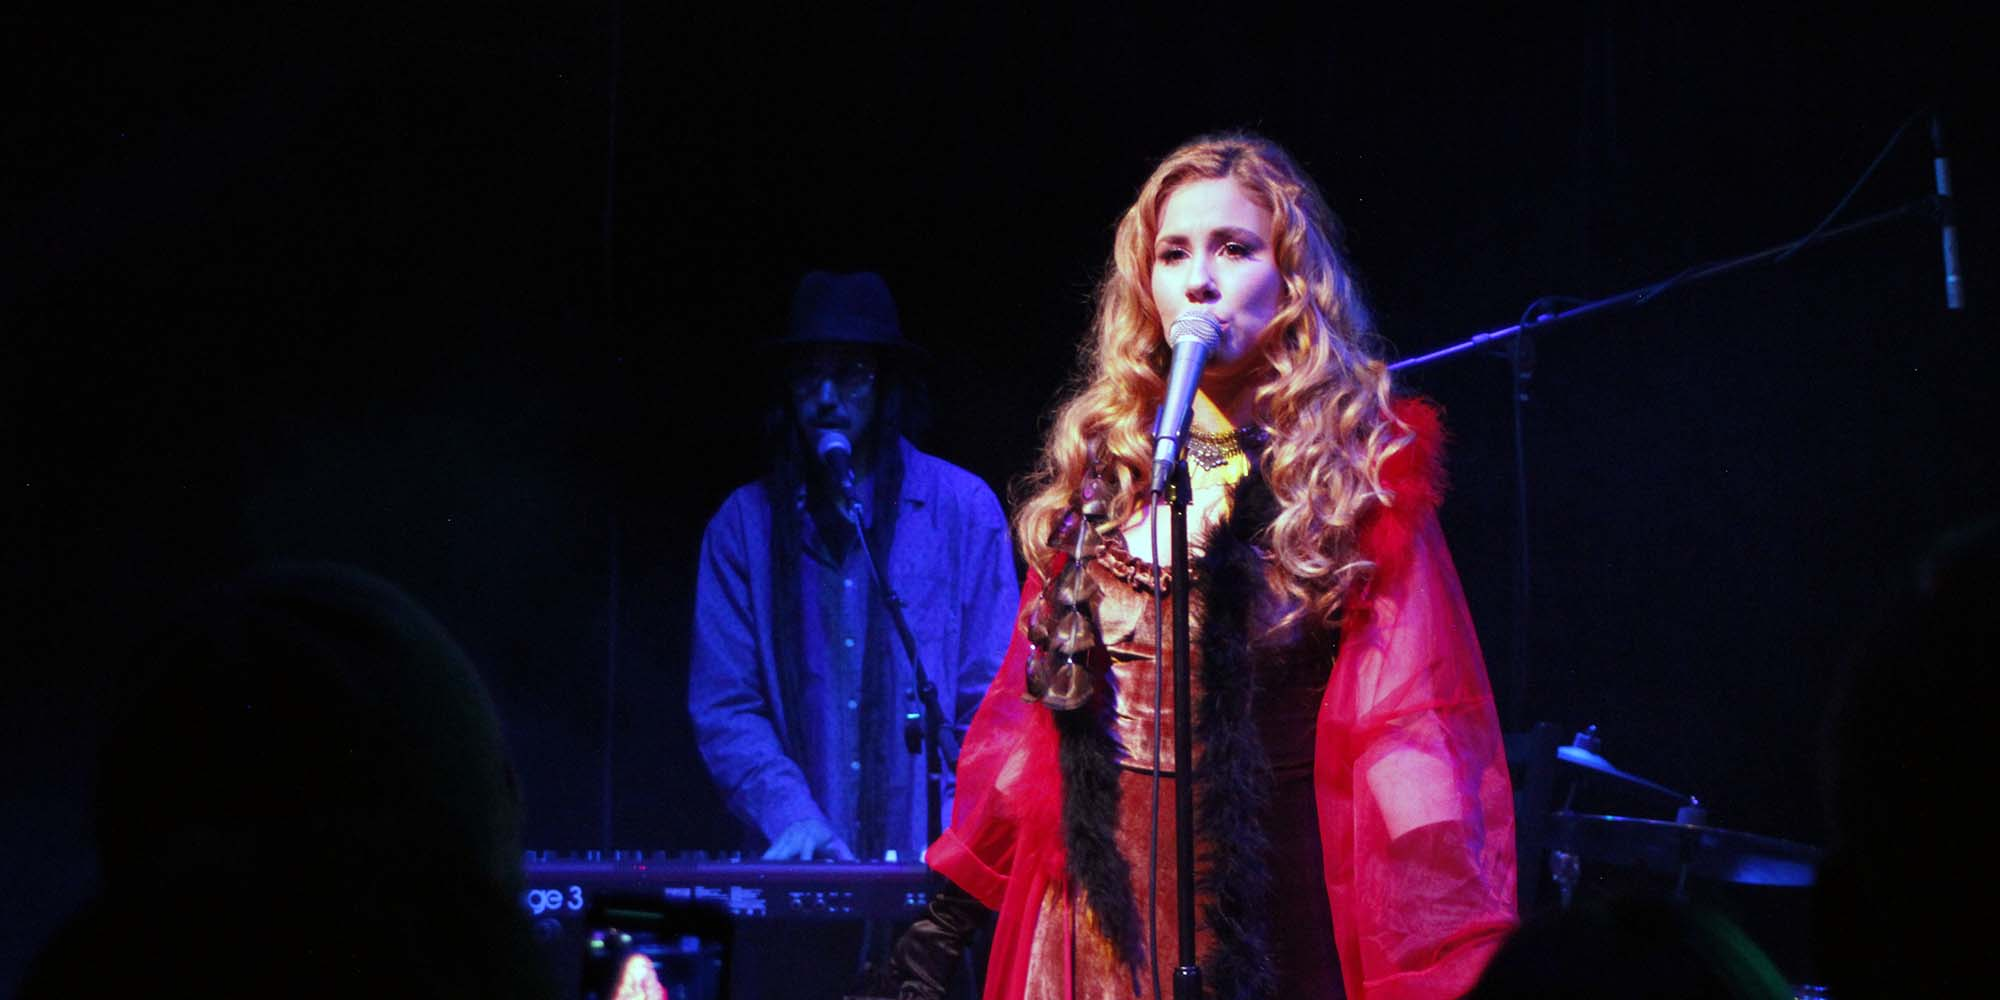 Haley Reinhart Amsterdam Bar & Hall St. Paul, MN April 15th 2019 Lo-Fi Soul Tour